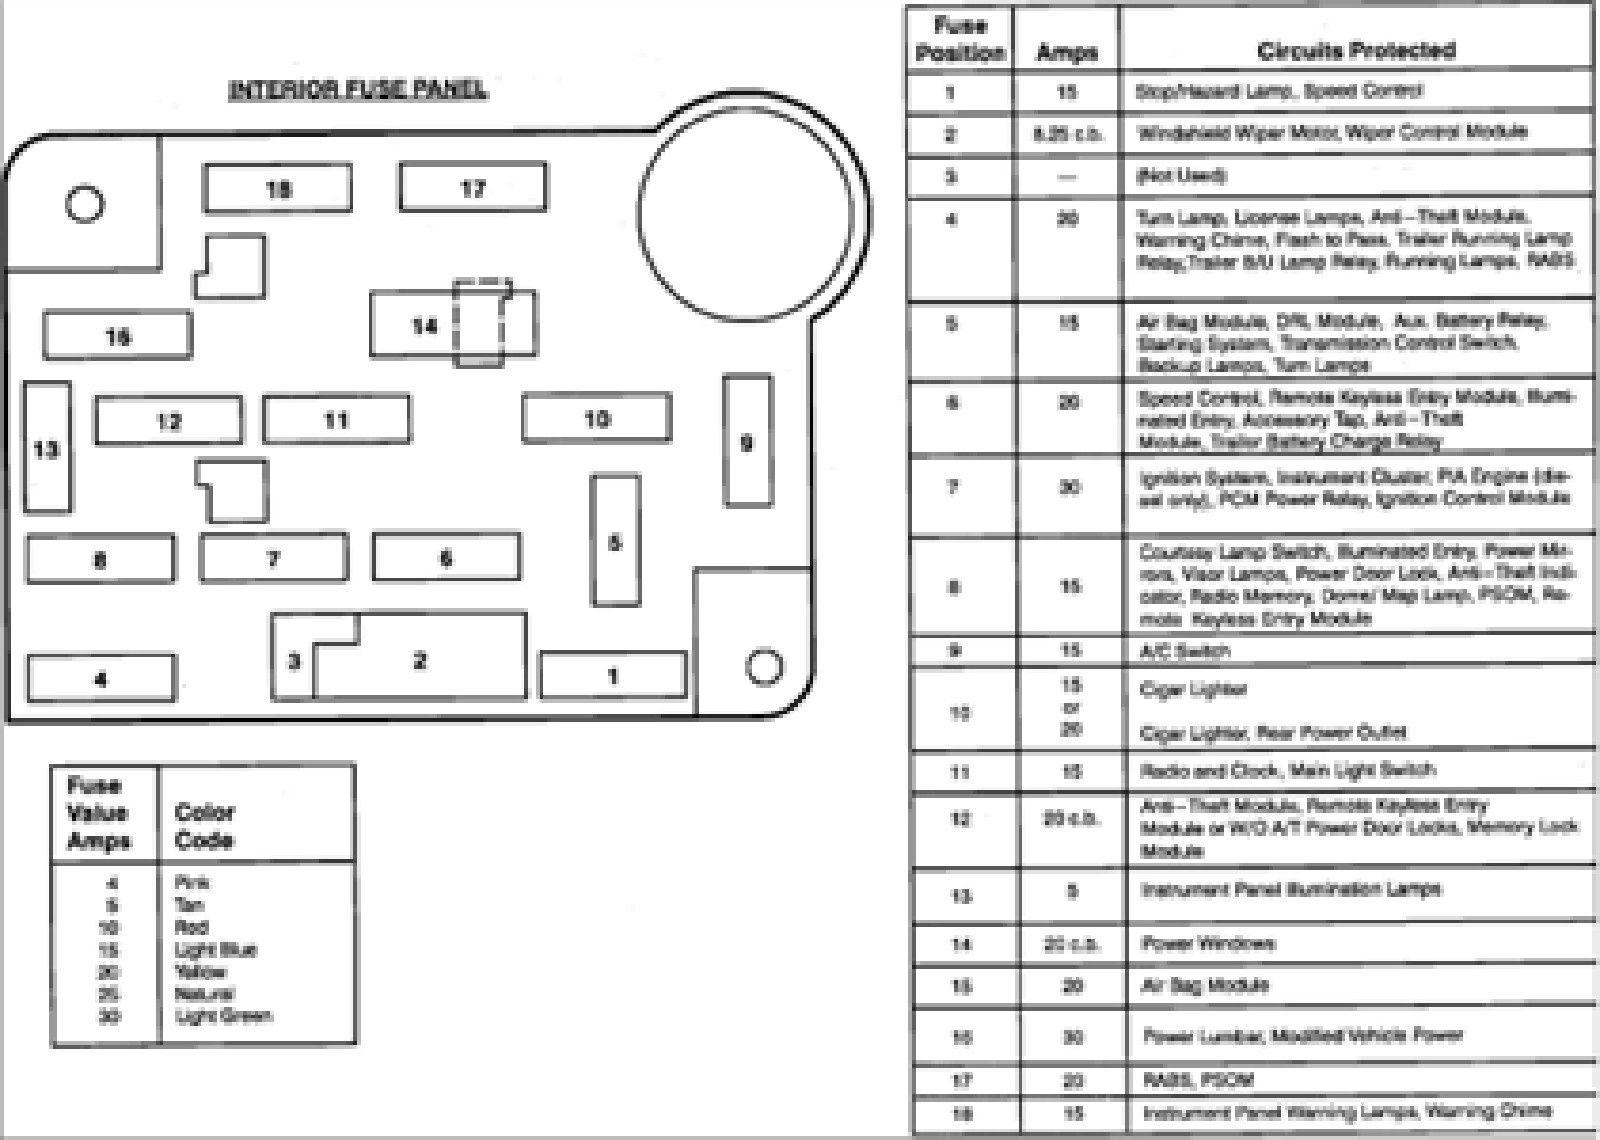 Fuse Box Diagram - Data Wiring Diagram Today - 1997 Ford F150 Radio Wiring Diagram